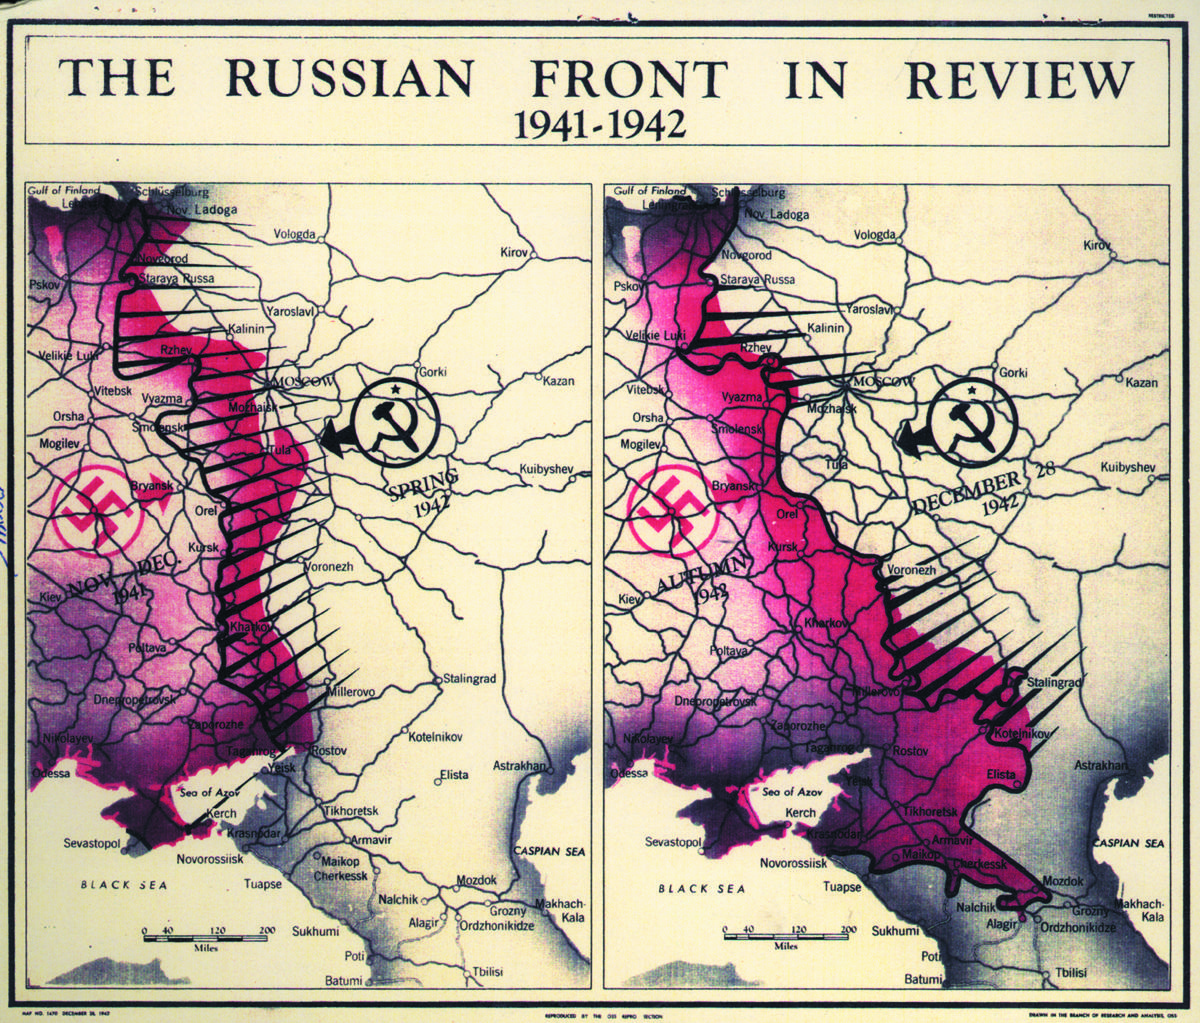 Map of the Nazi retreat from Russia after it failed to take Moscow from the Soviets in the winter of 1941 and 1942, a turning point in the war. (Central Intelligence Agency)